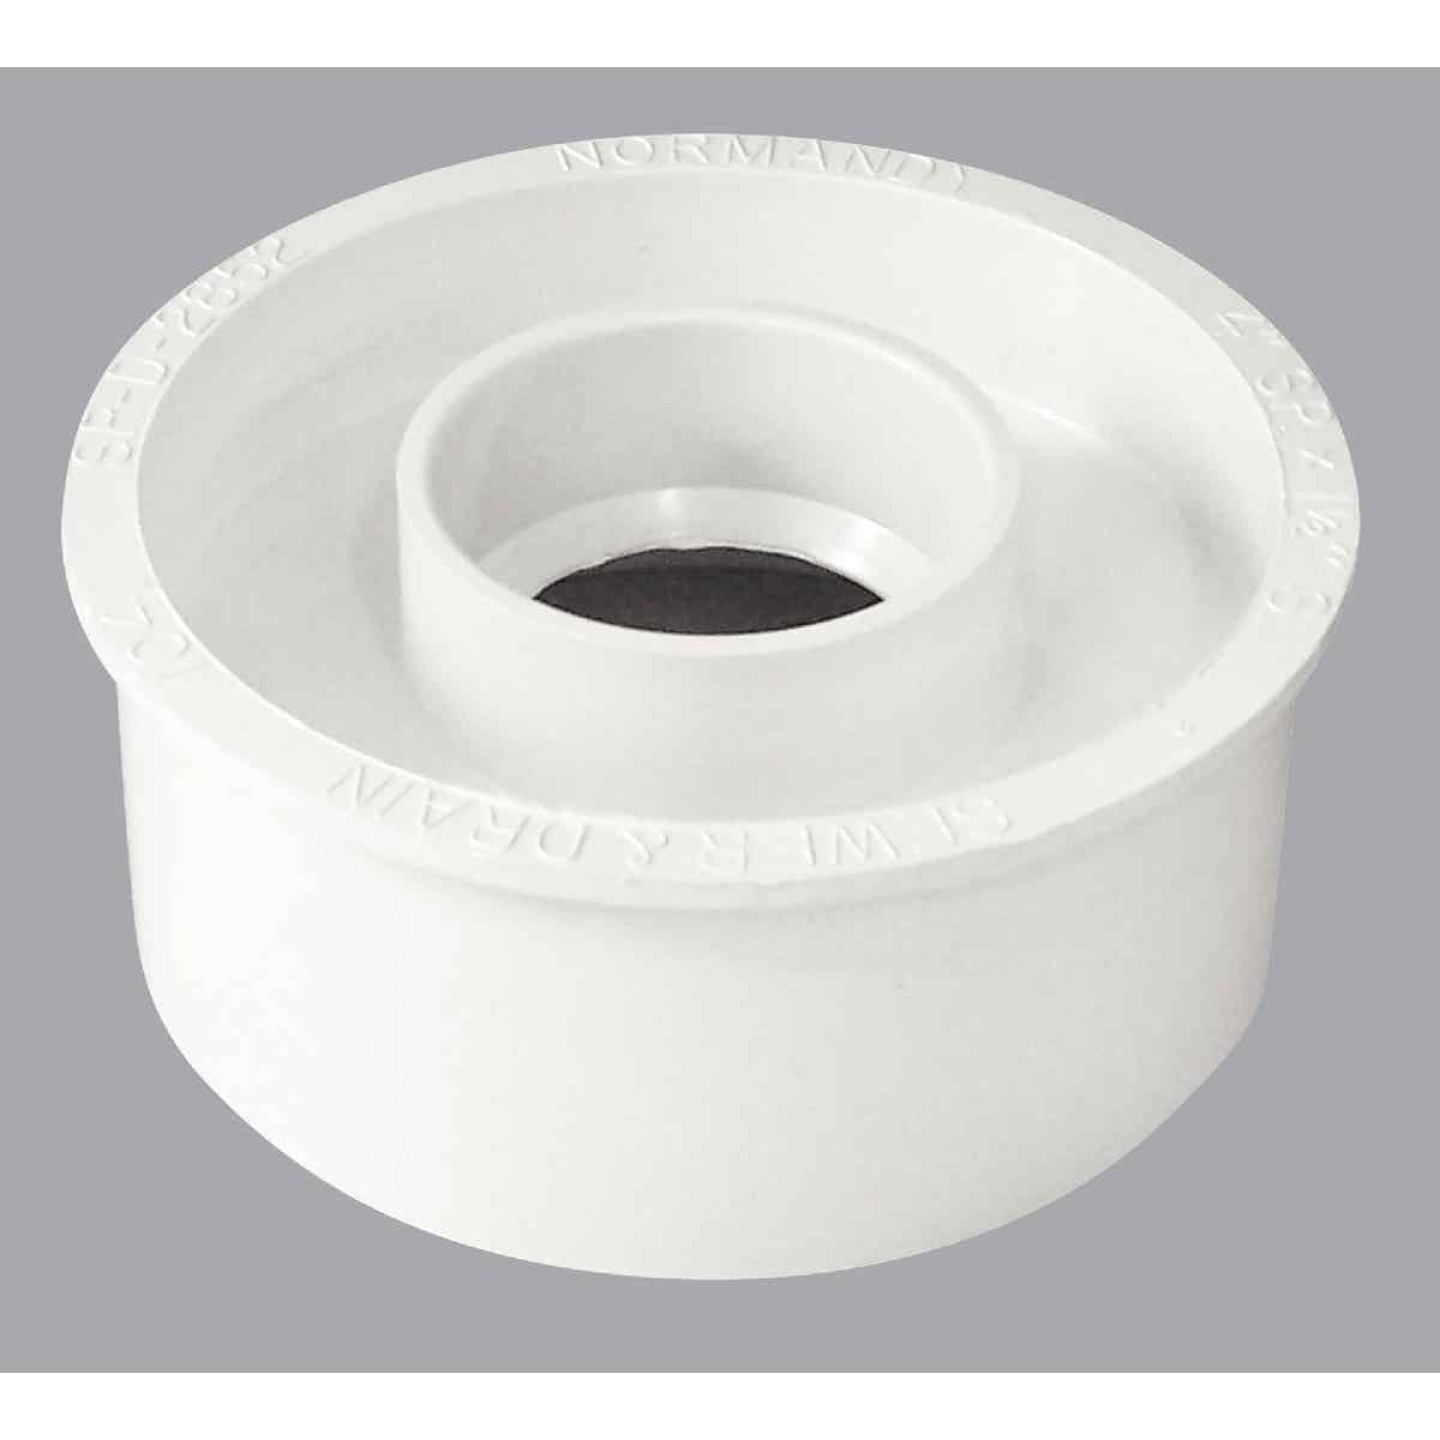 IPEX Canplas Schedule 40 4 In. to 1-1/2 In. PVC Sewer and Drain Bushing Image 1